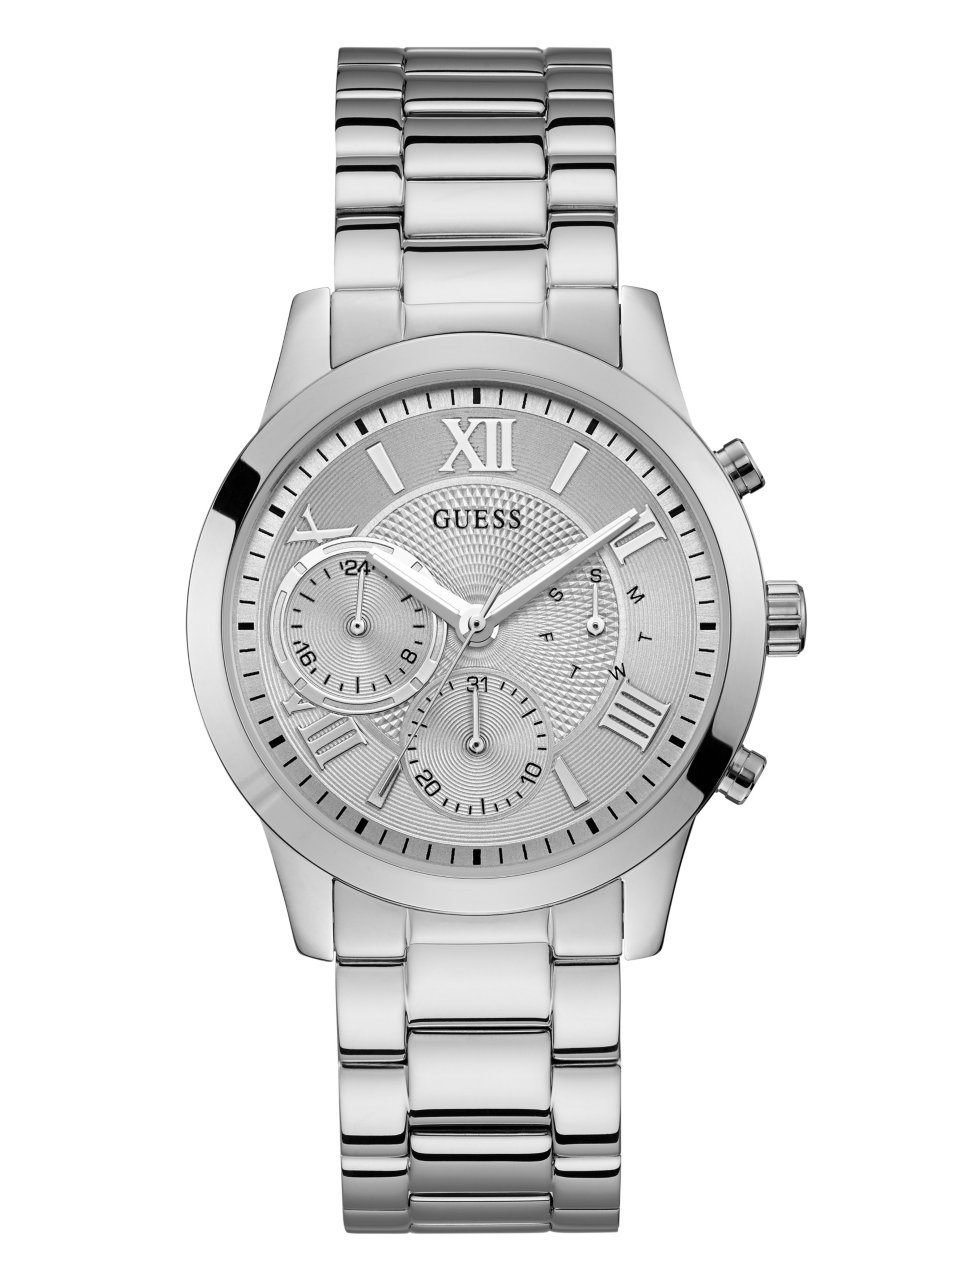 GUESS Women's Stainless Steel Casual Watch, Color: Silver-Tone (Model: U1070L1)